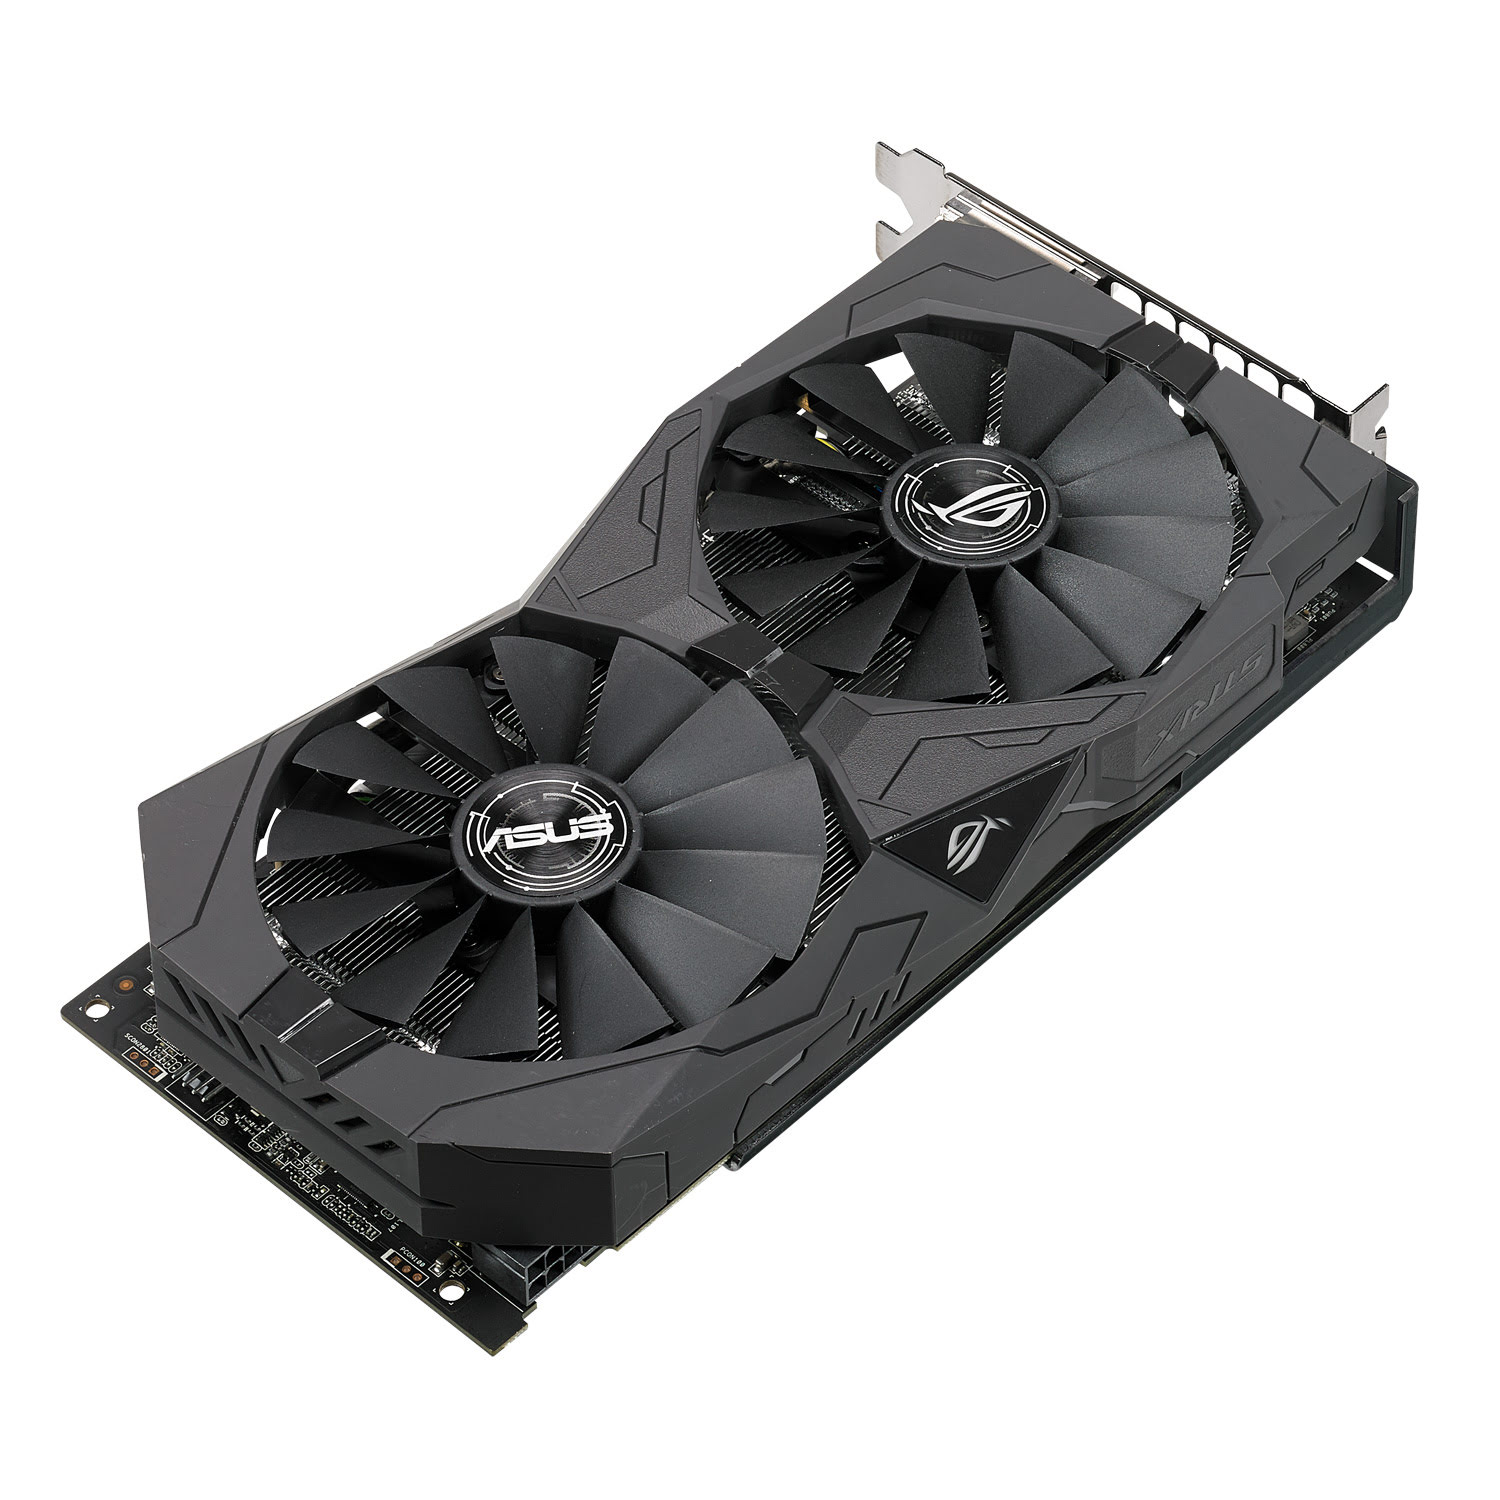 Asus STRIX-RX570-O4G GAMING 4Go - Carte graphique Asus - 2